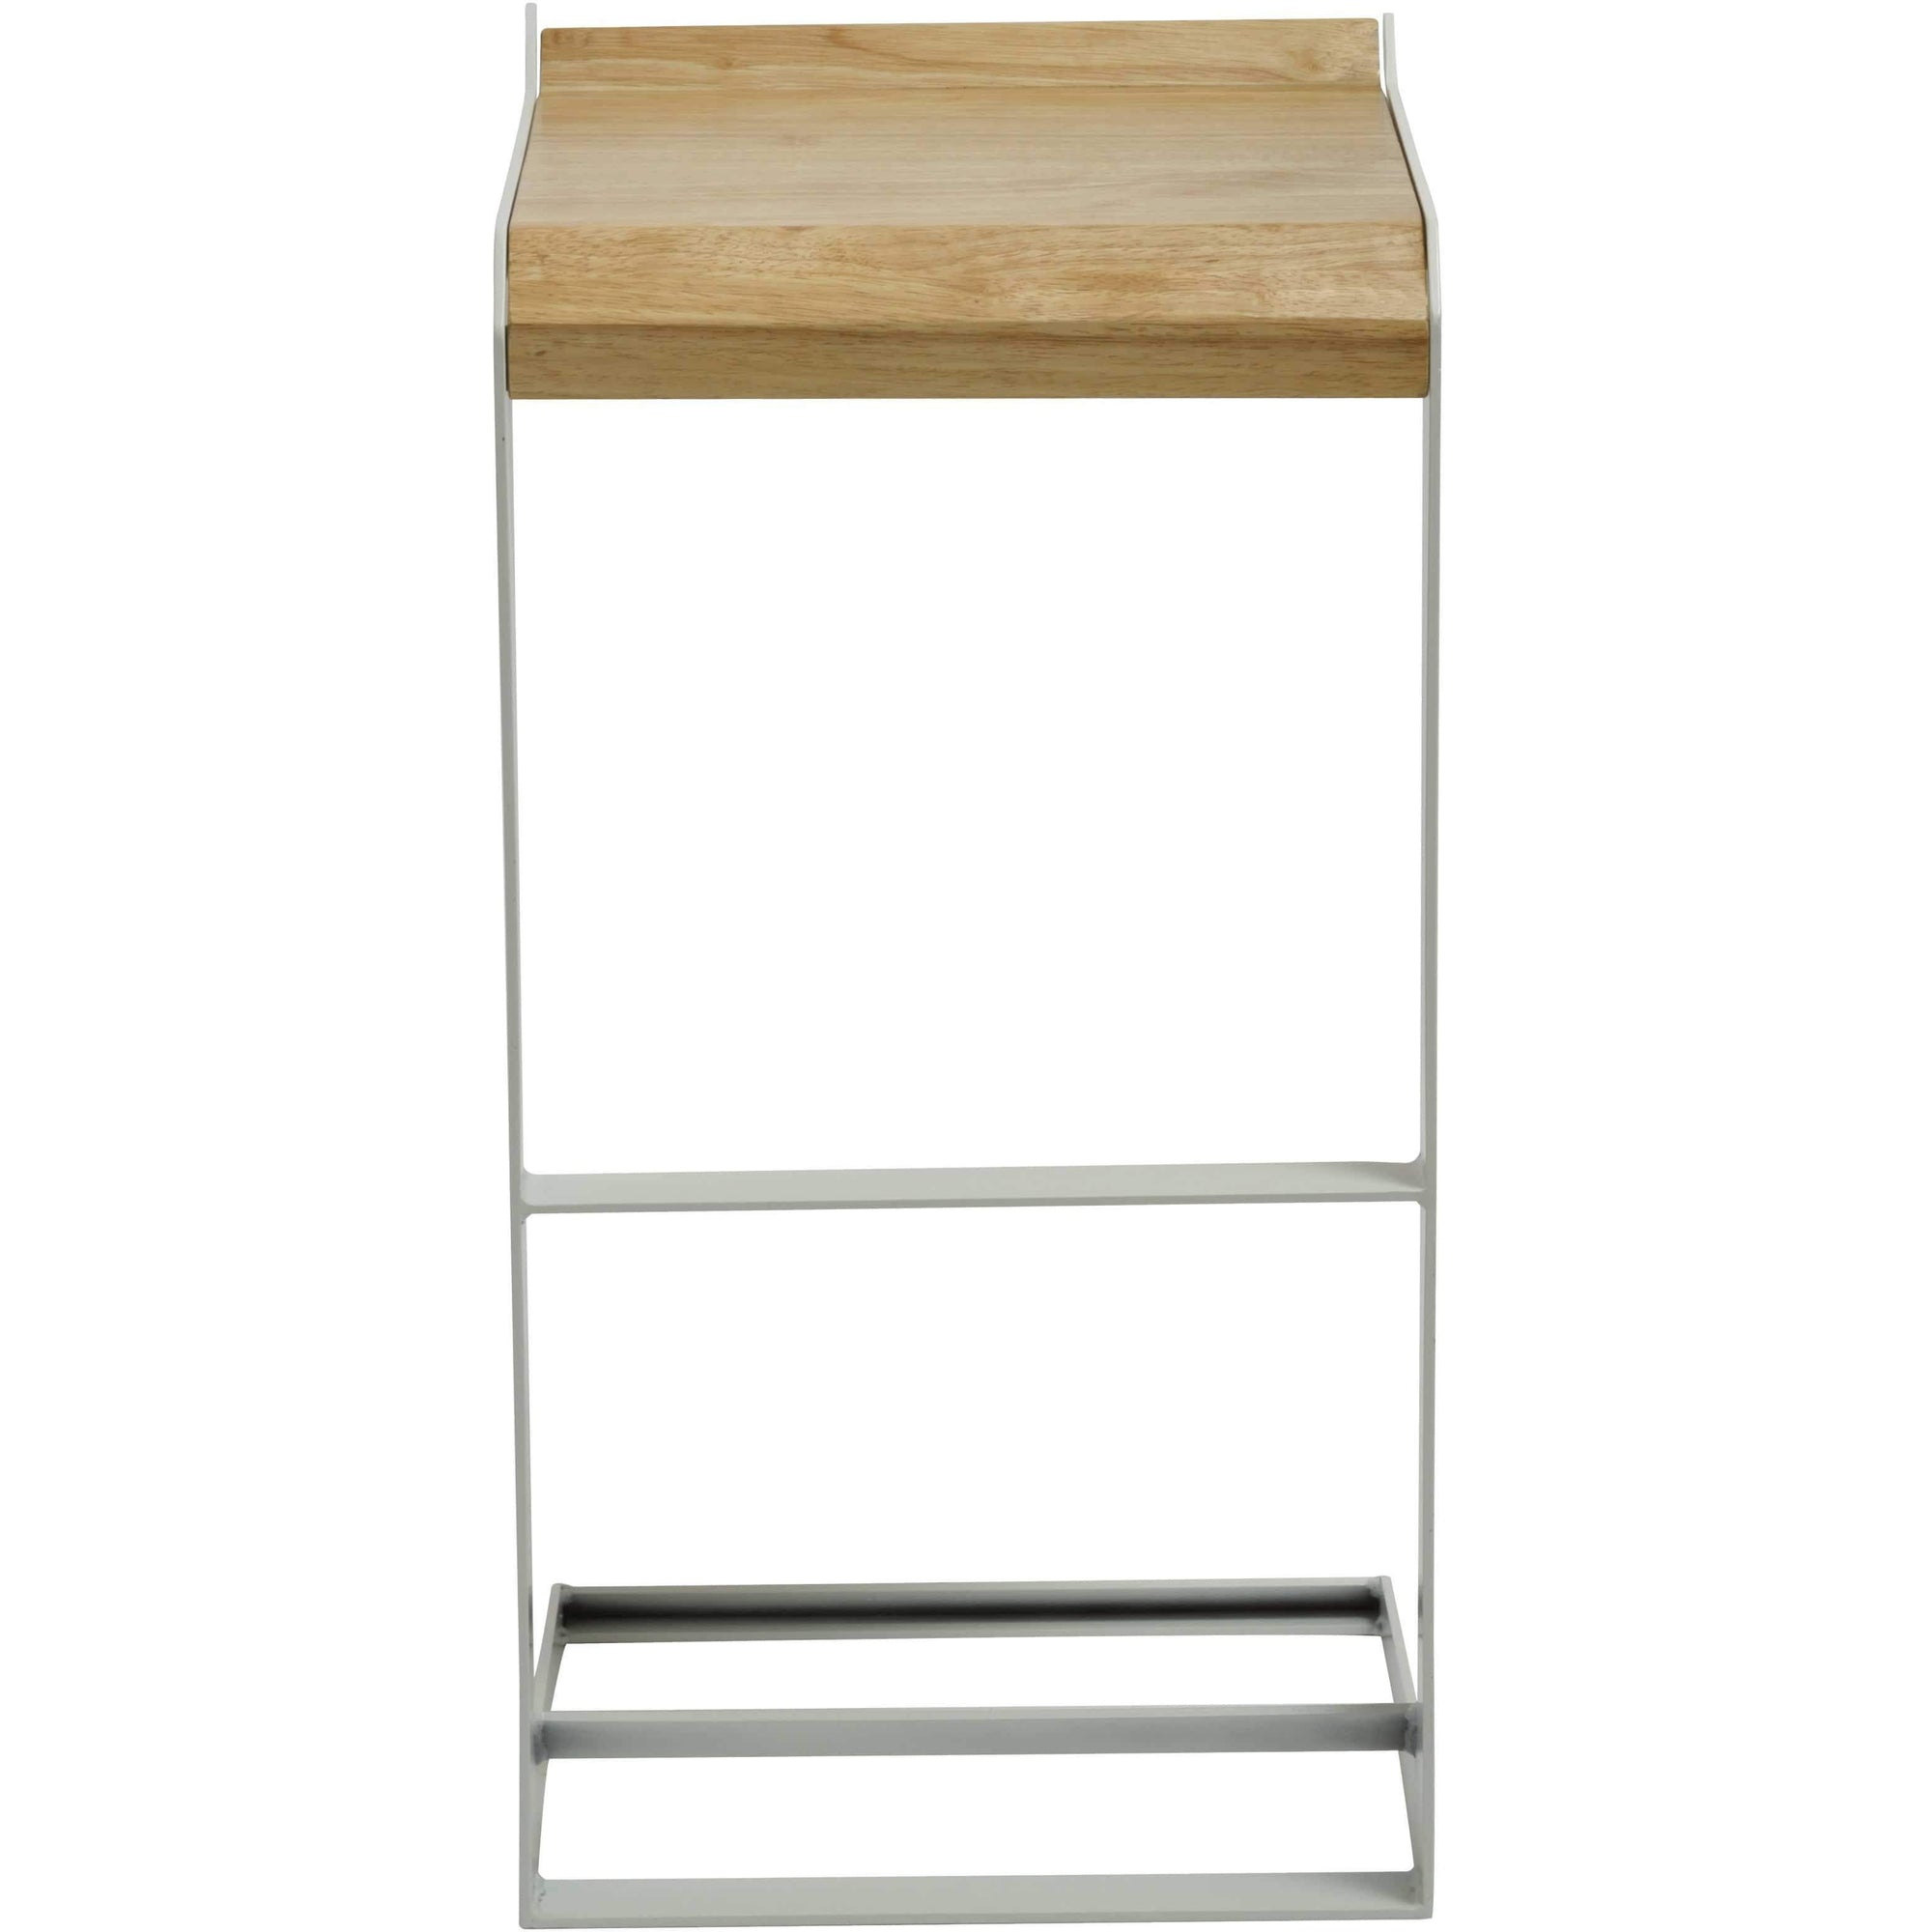 Bromi Design Bar Stools White / Wood, Steel Bromi Design Logan Barstool- White By Bromi Design BF3011W